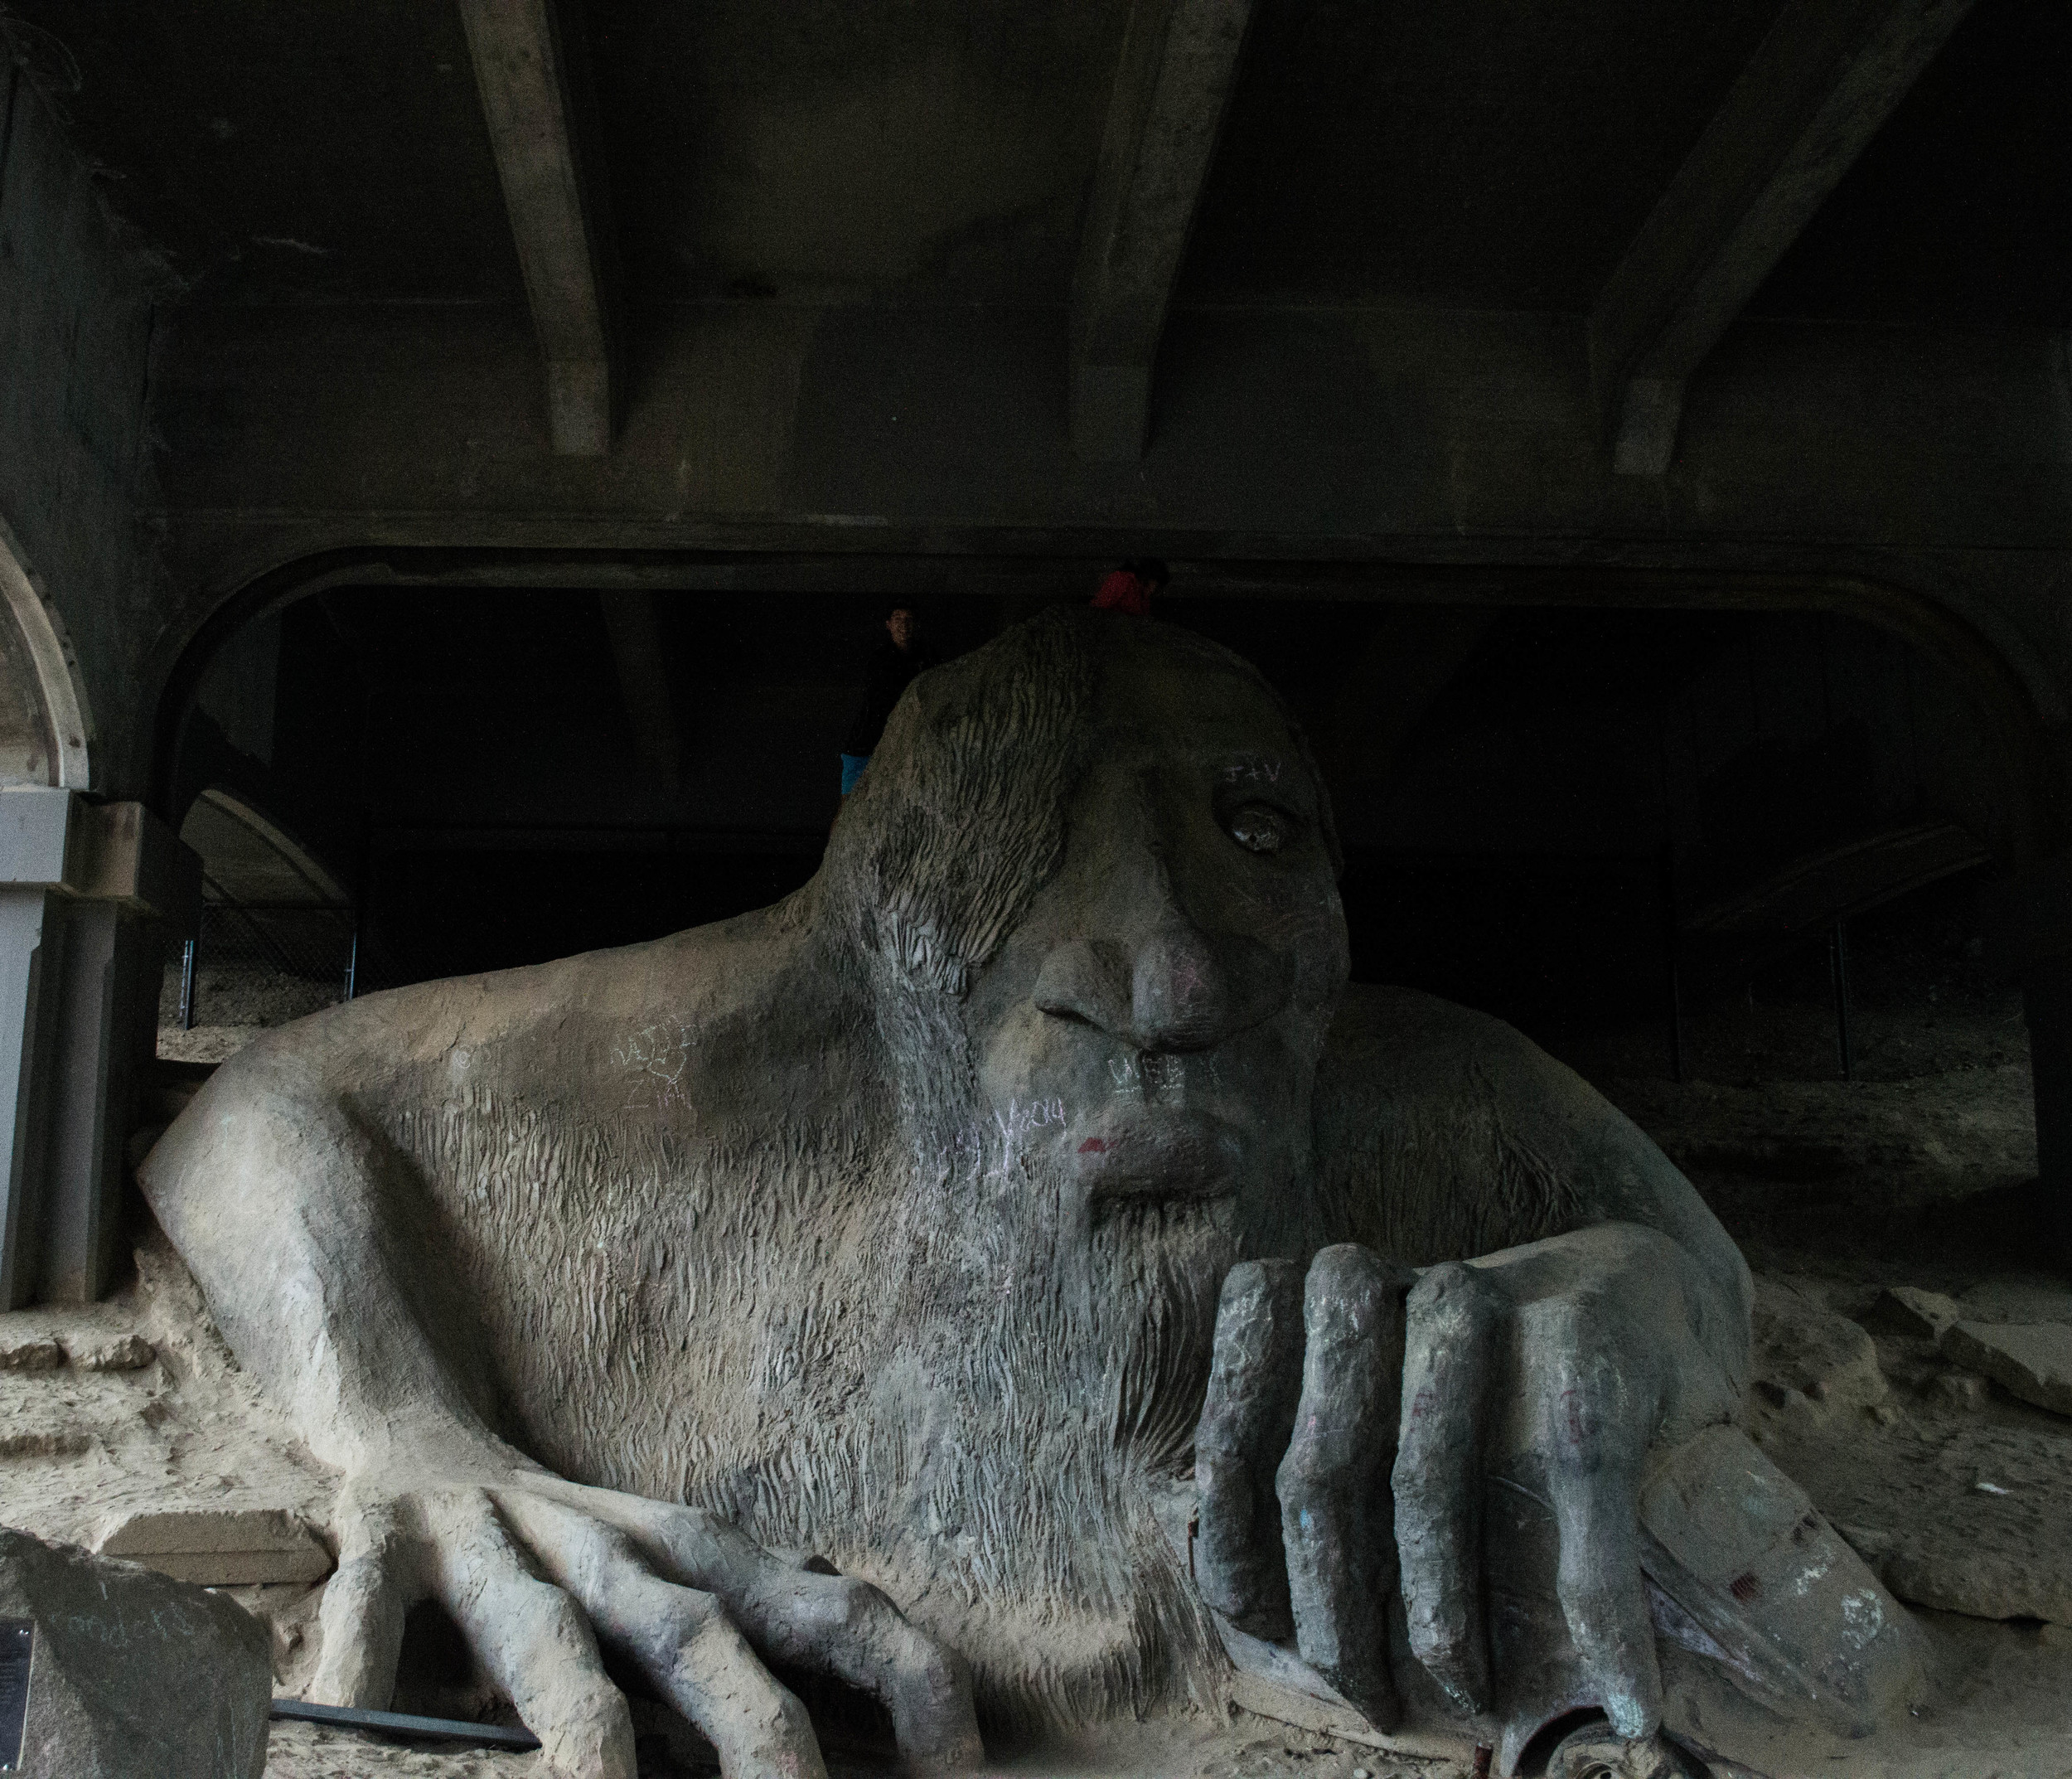 Me on top of the Troll under the bridge in Fremont